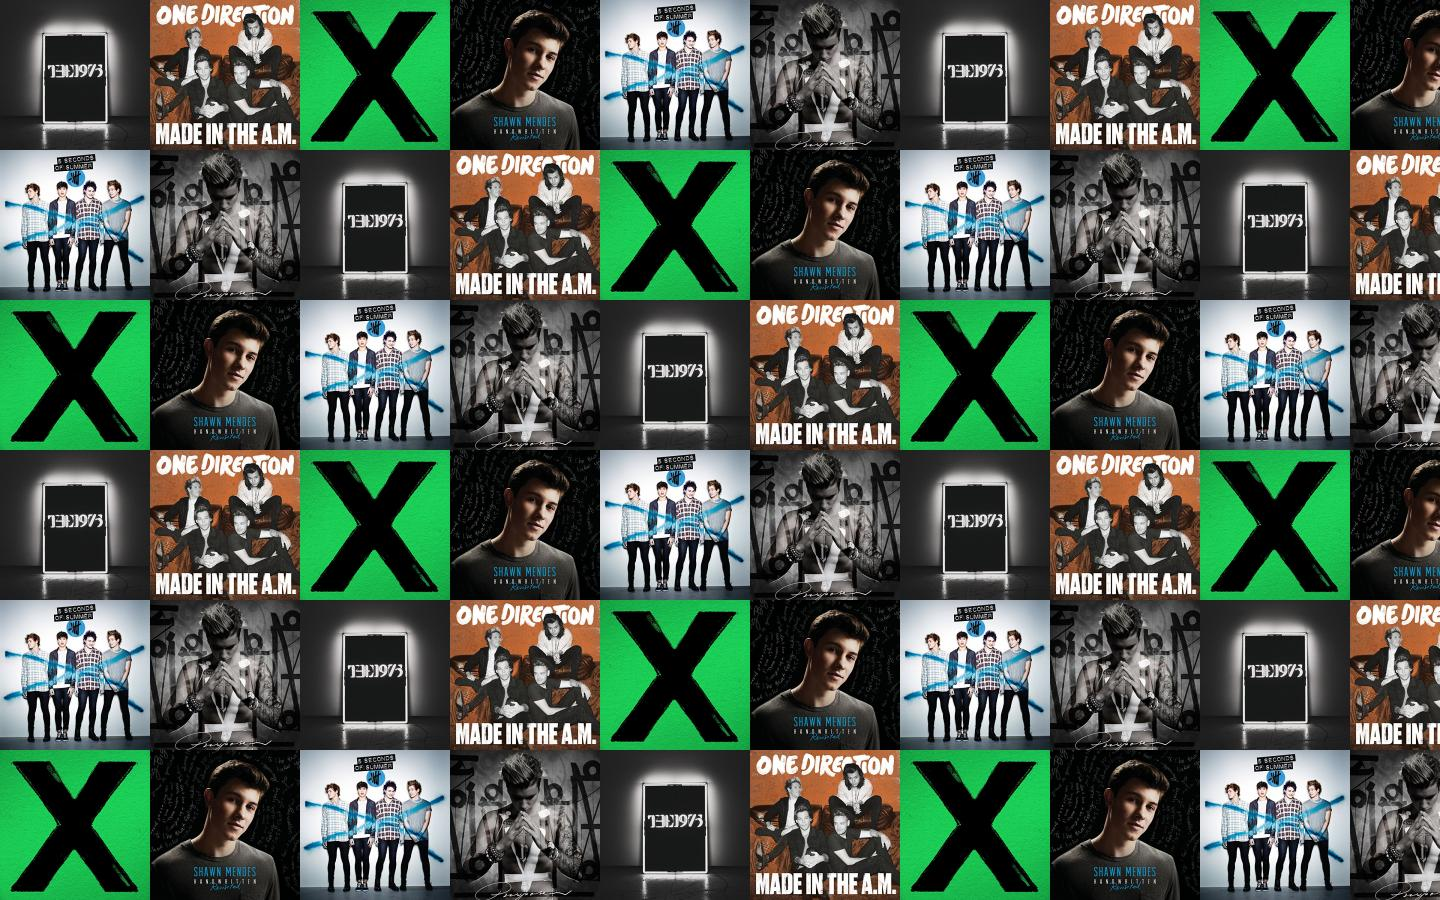 Halsey Desktop Backgrounds Related Keywords - Ed Sheeran Shawn Mendes And One Direction - HD Wallpaper